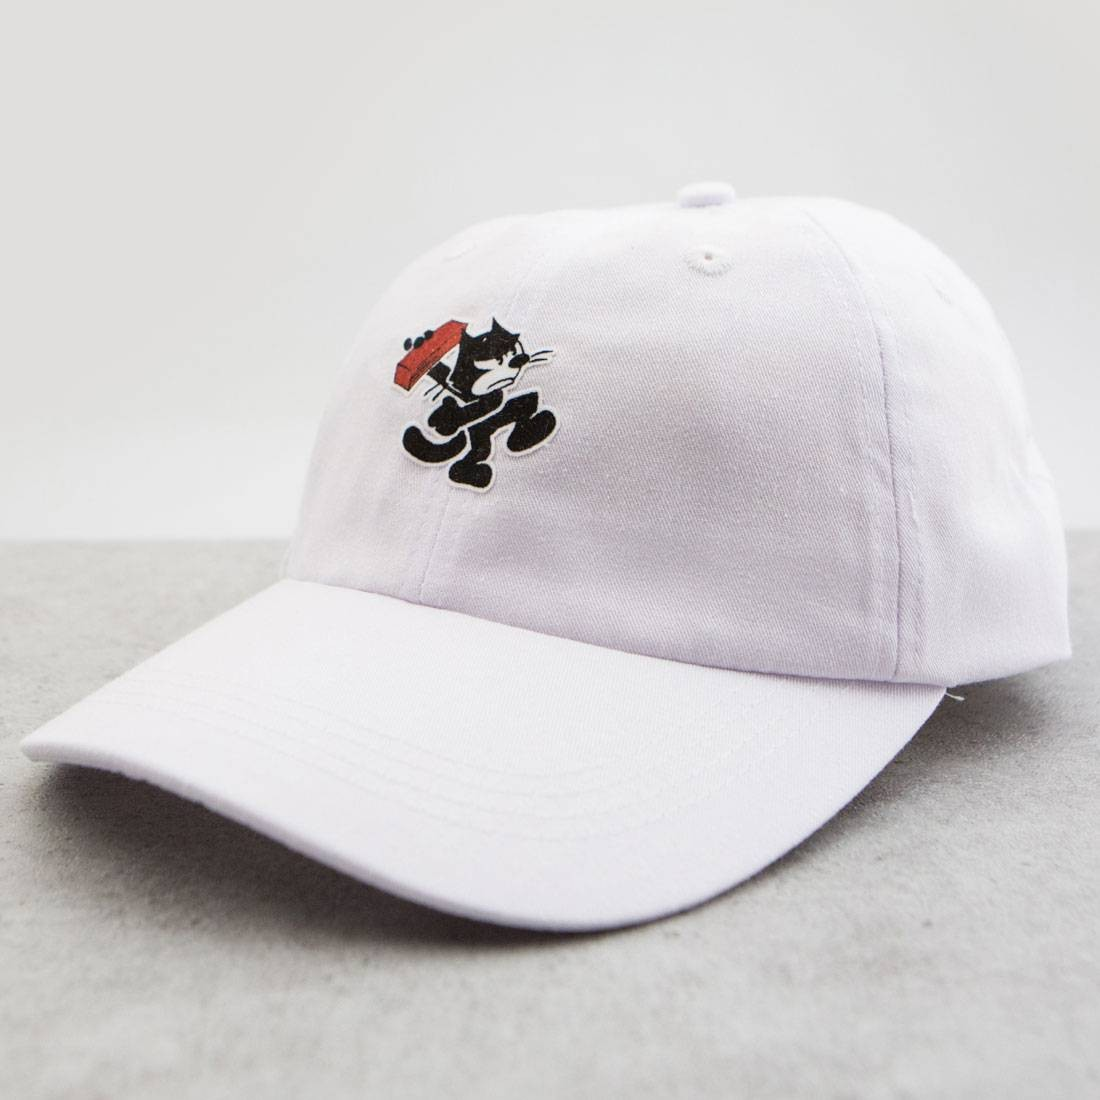 BAIT x DreamWorks Felix The Cat Brick Dad Cap (white)